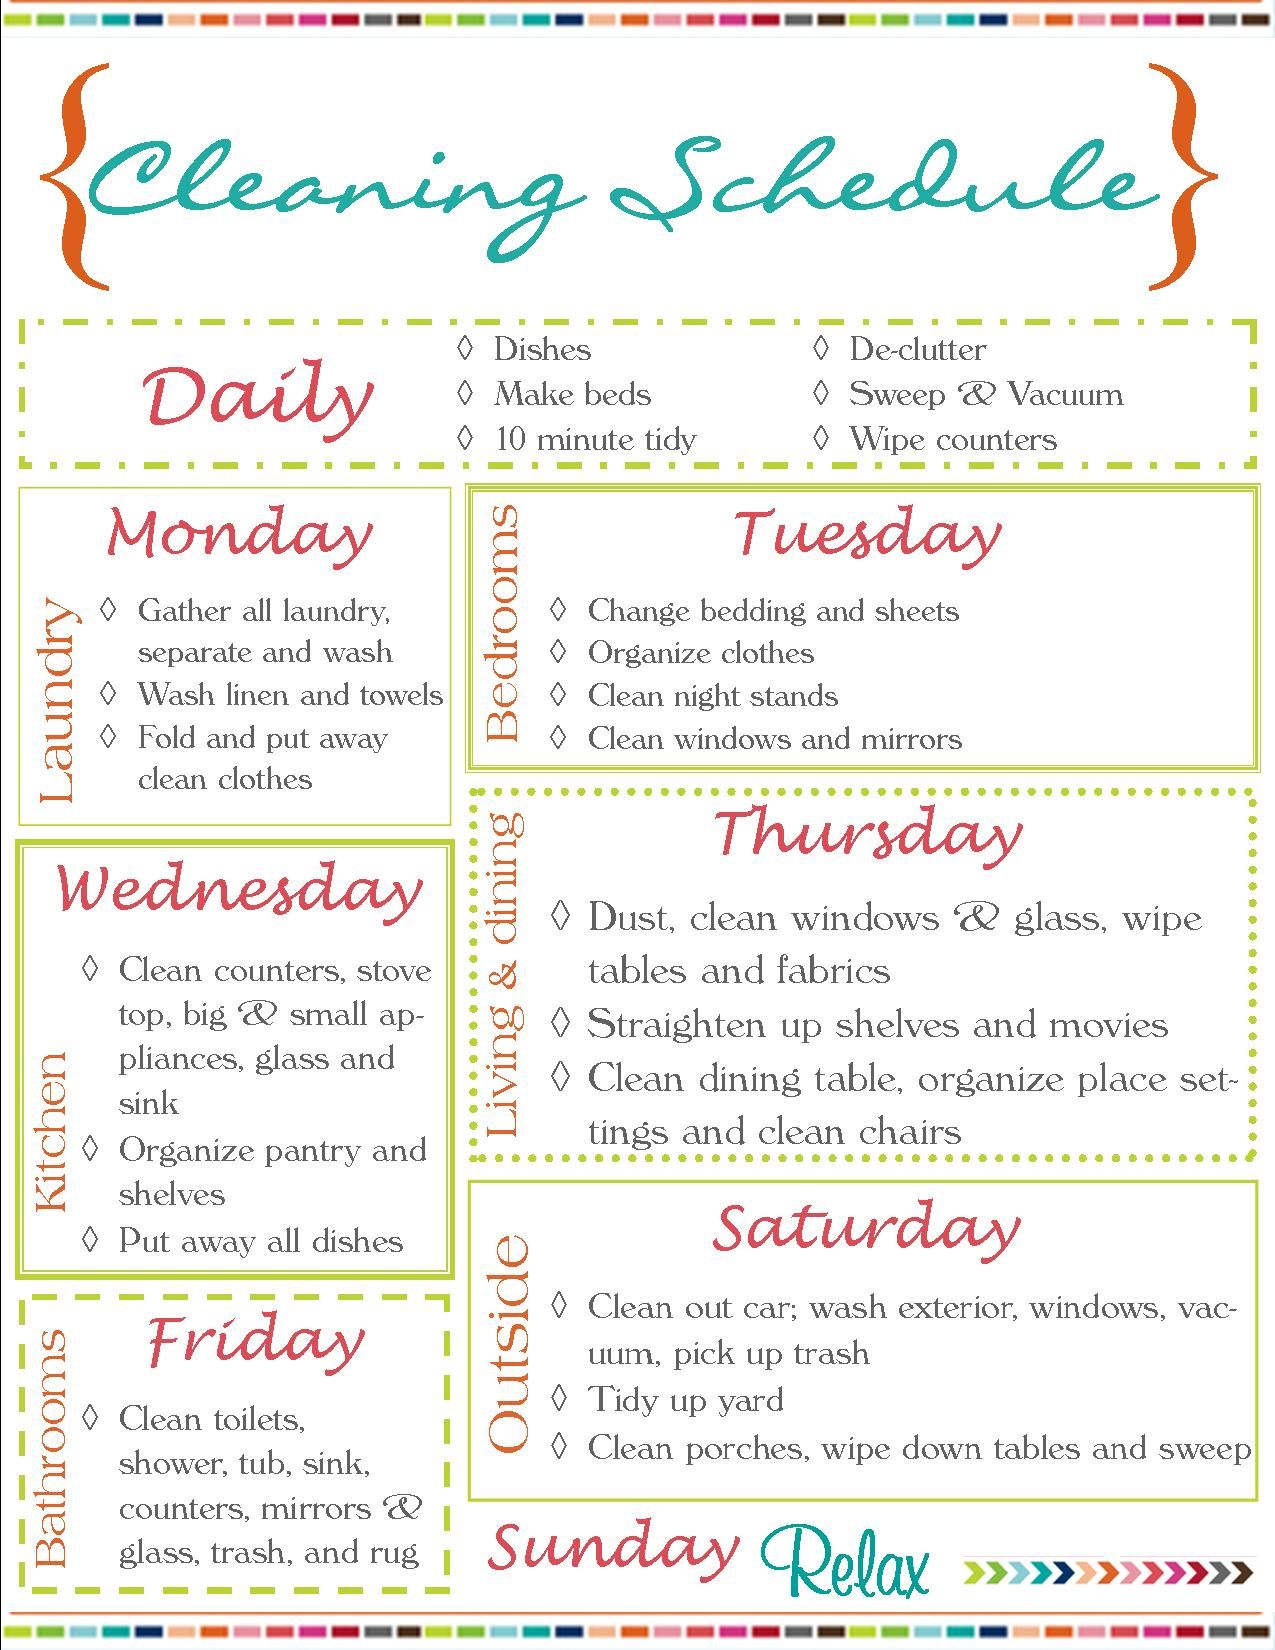 Download this weekly cleaning schedule for personal use only thank - Cleaning Schedule Because If A Read About Cleaning That Might Make It Happen Right